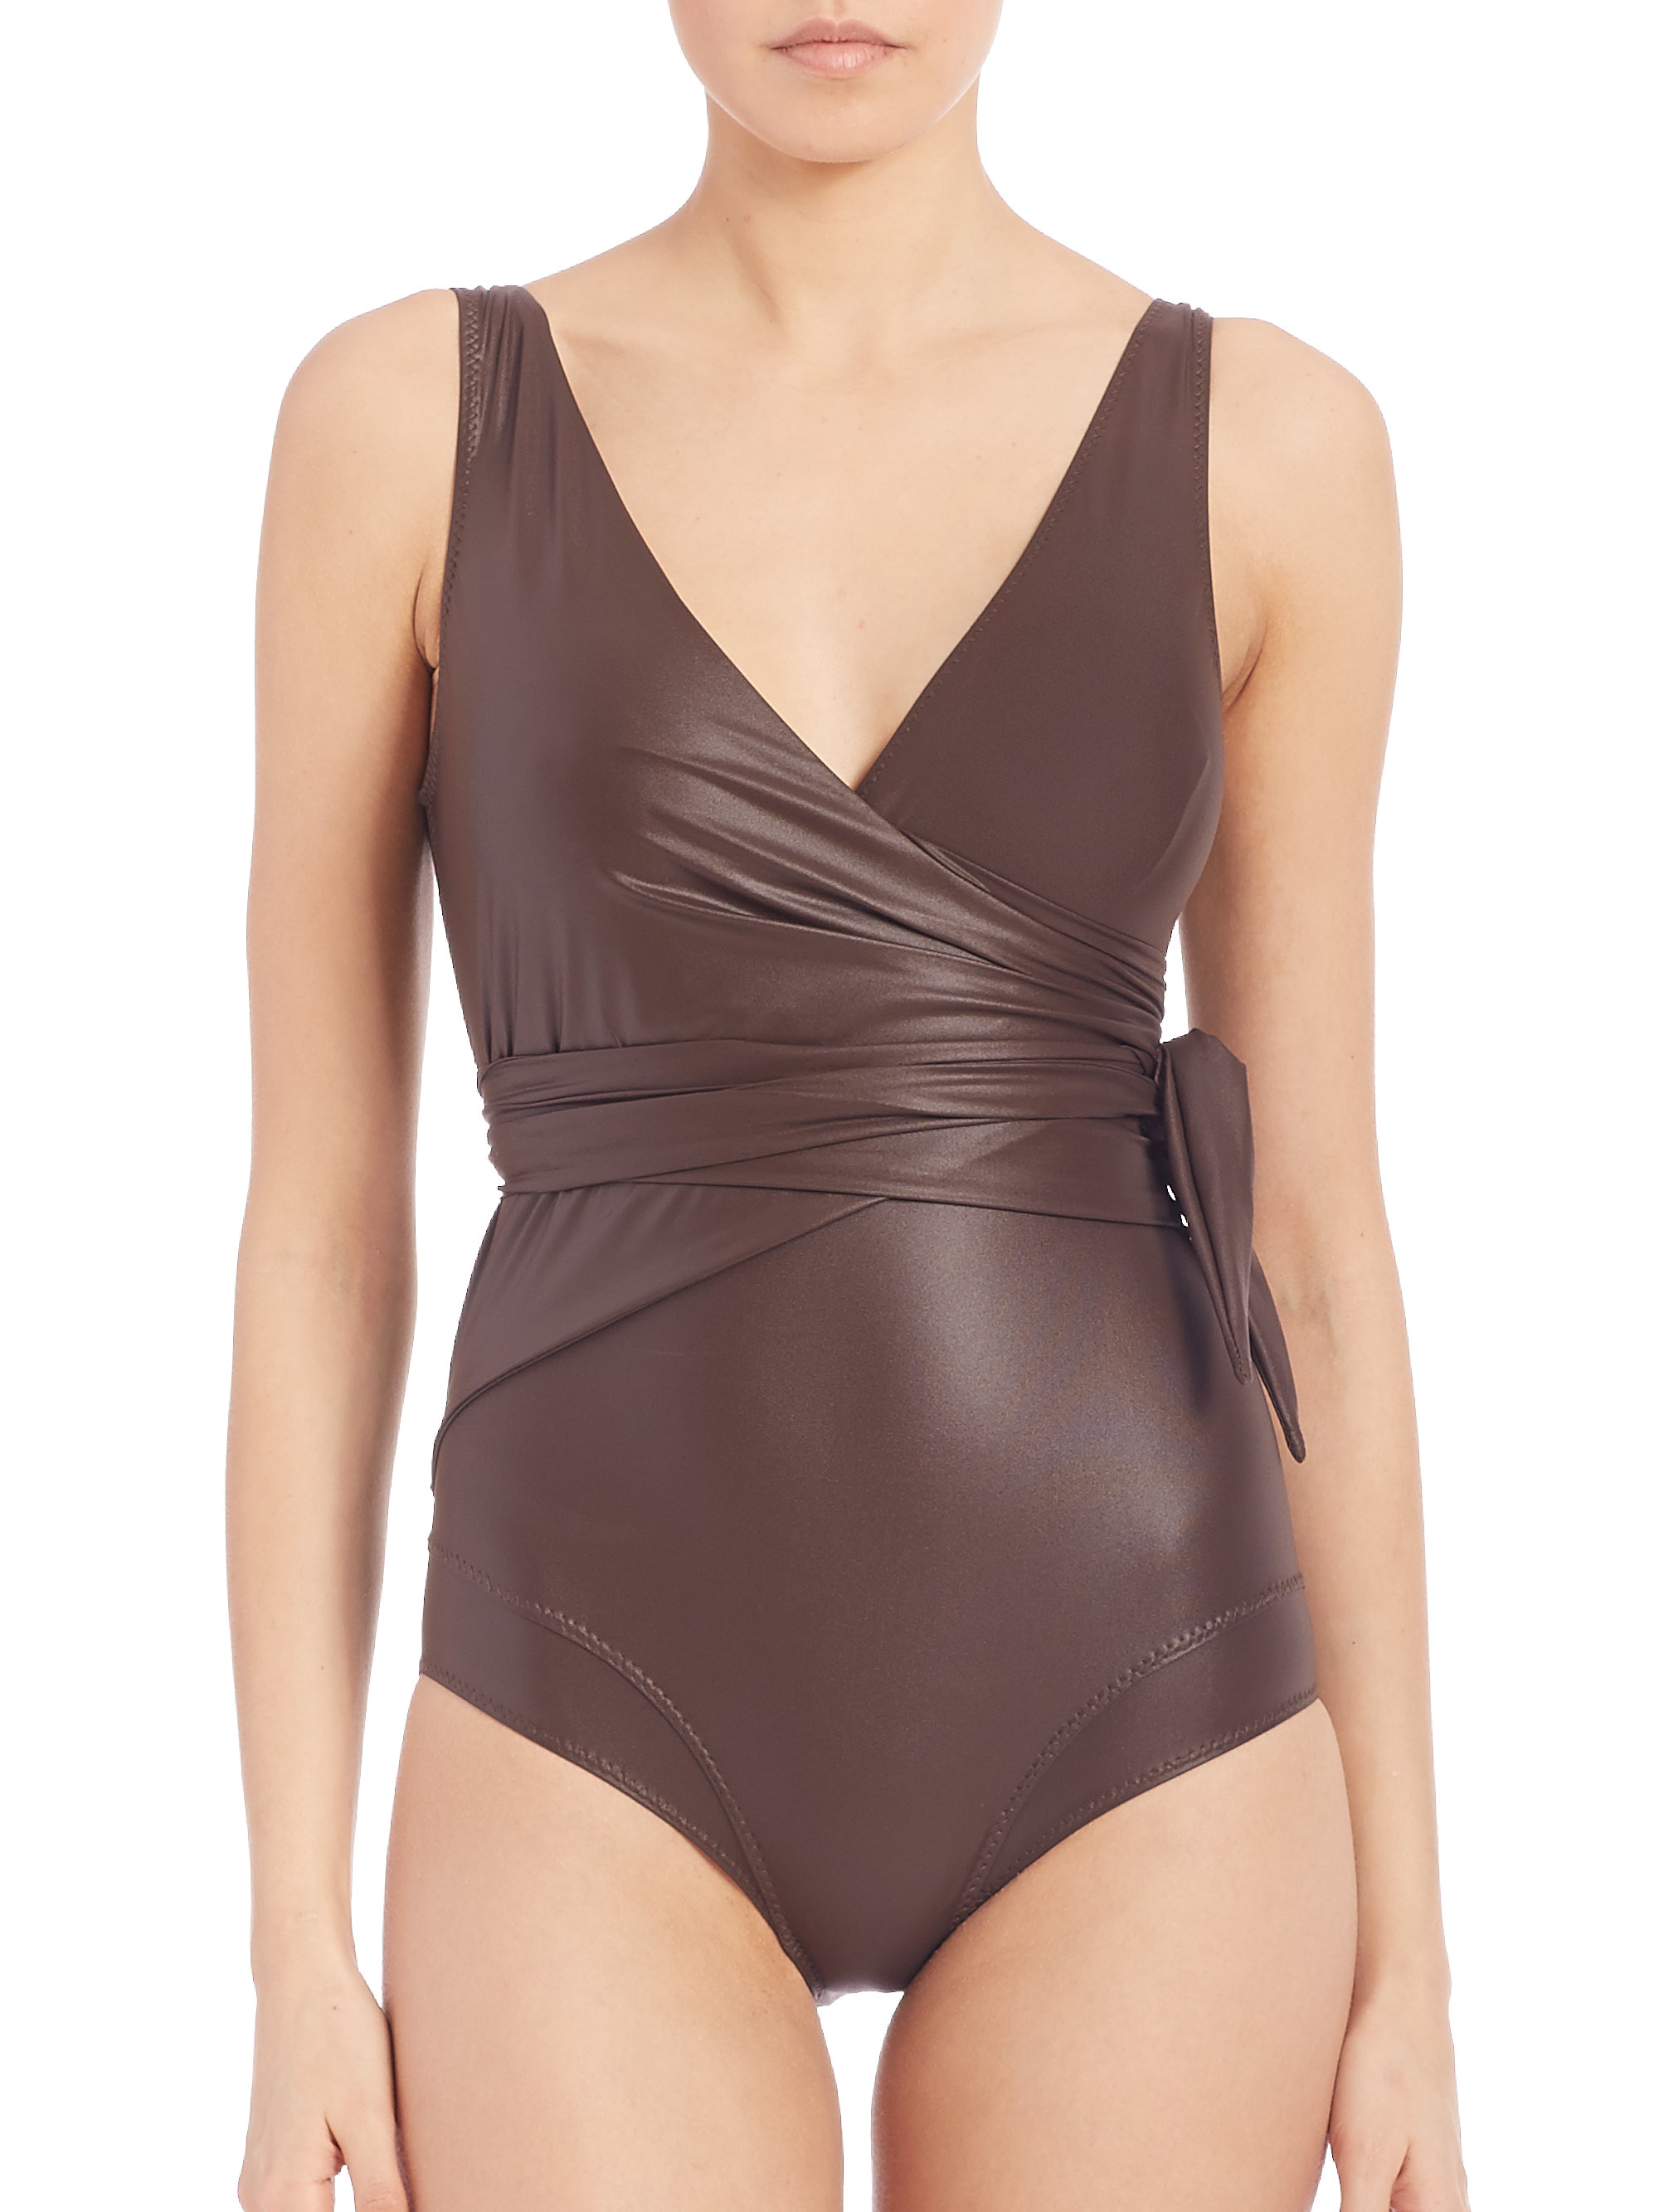 lisa marie fernandez one piece dree louise wrap maillot in brown lyst. Black Bedroom Furniture Sets. Home Design Ideas